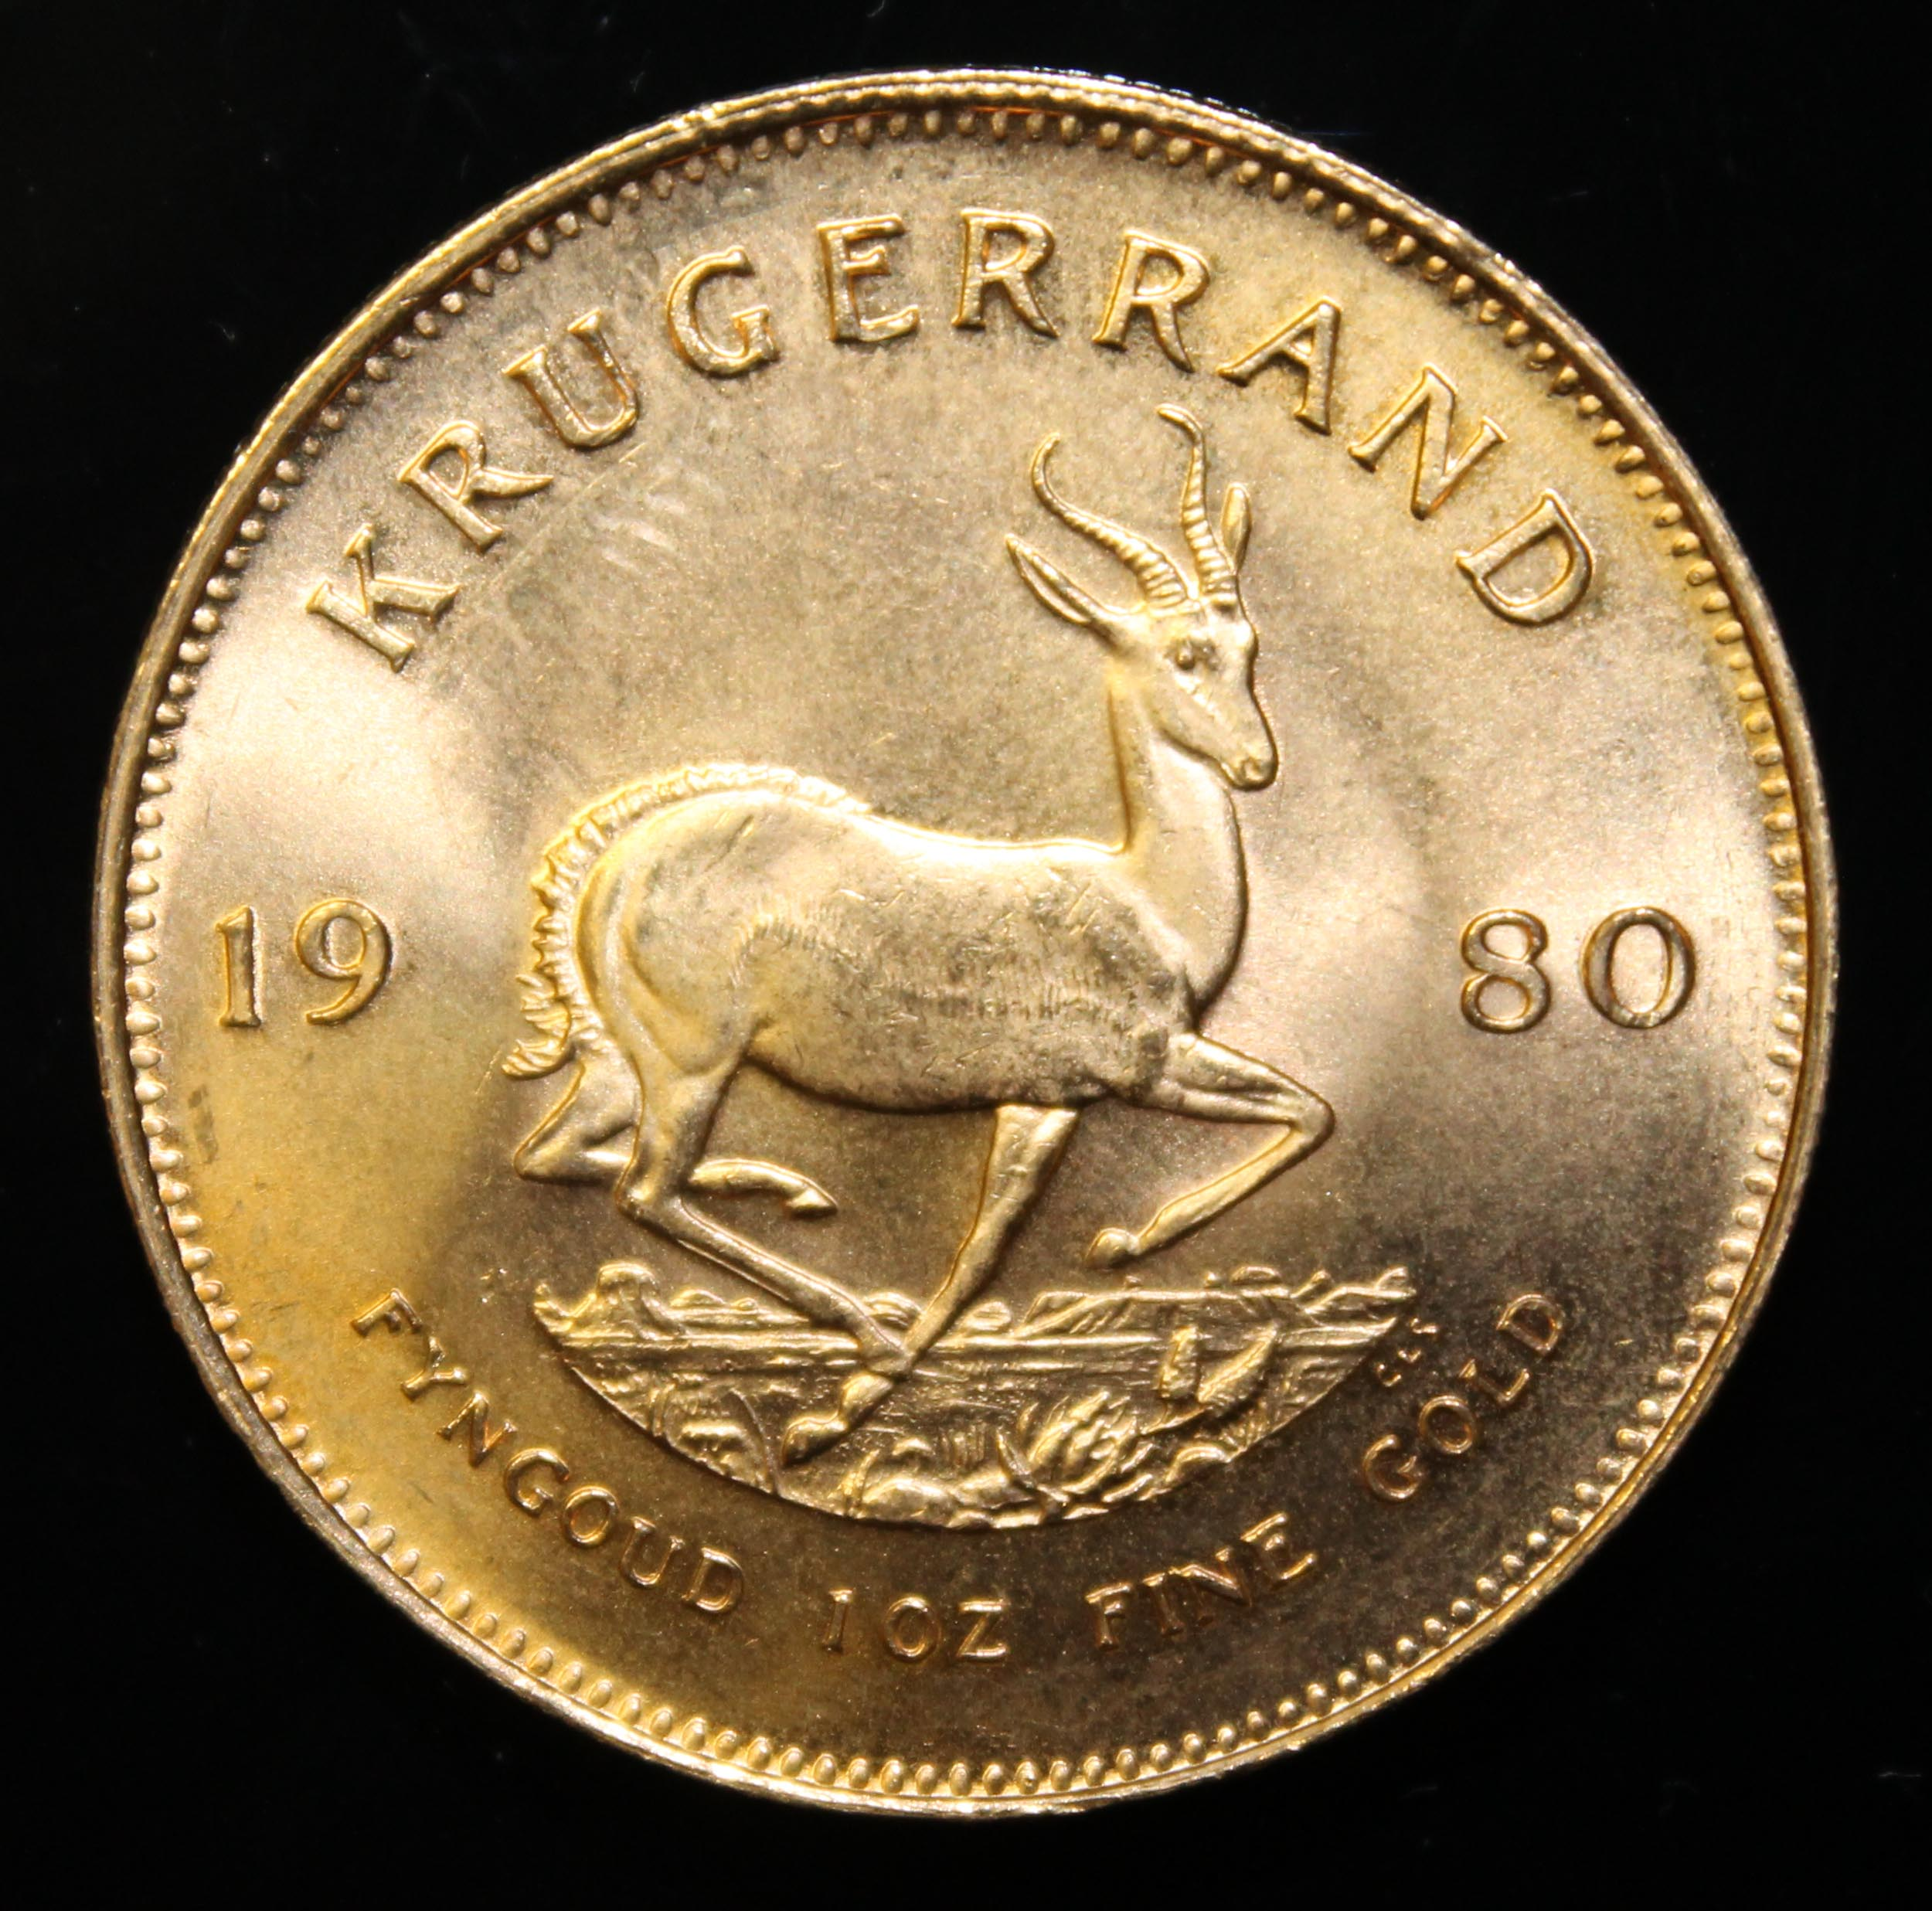 South Africa, 1980 Krugerrand, 1 oz. fine gold (91.67%) ONLY 10% BUYER'S PREMIUM (INCLUSIVE OF - Image 2 of 2